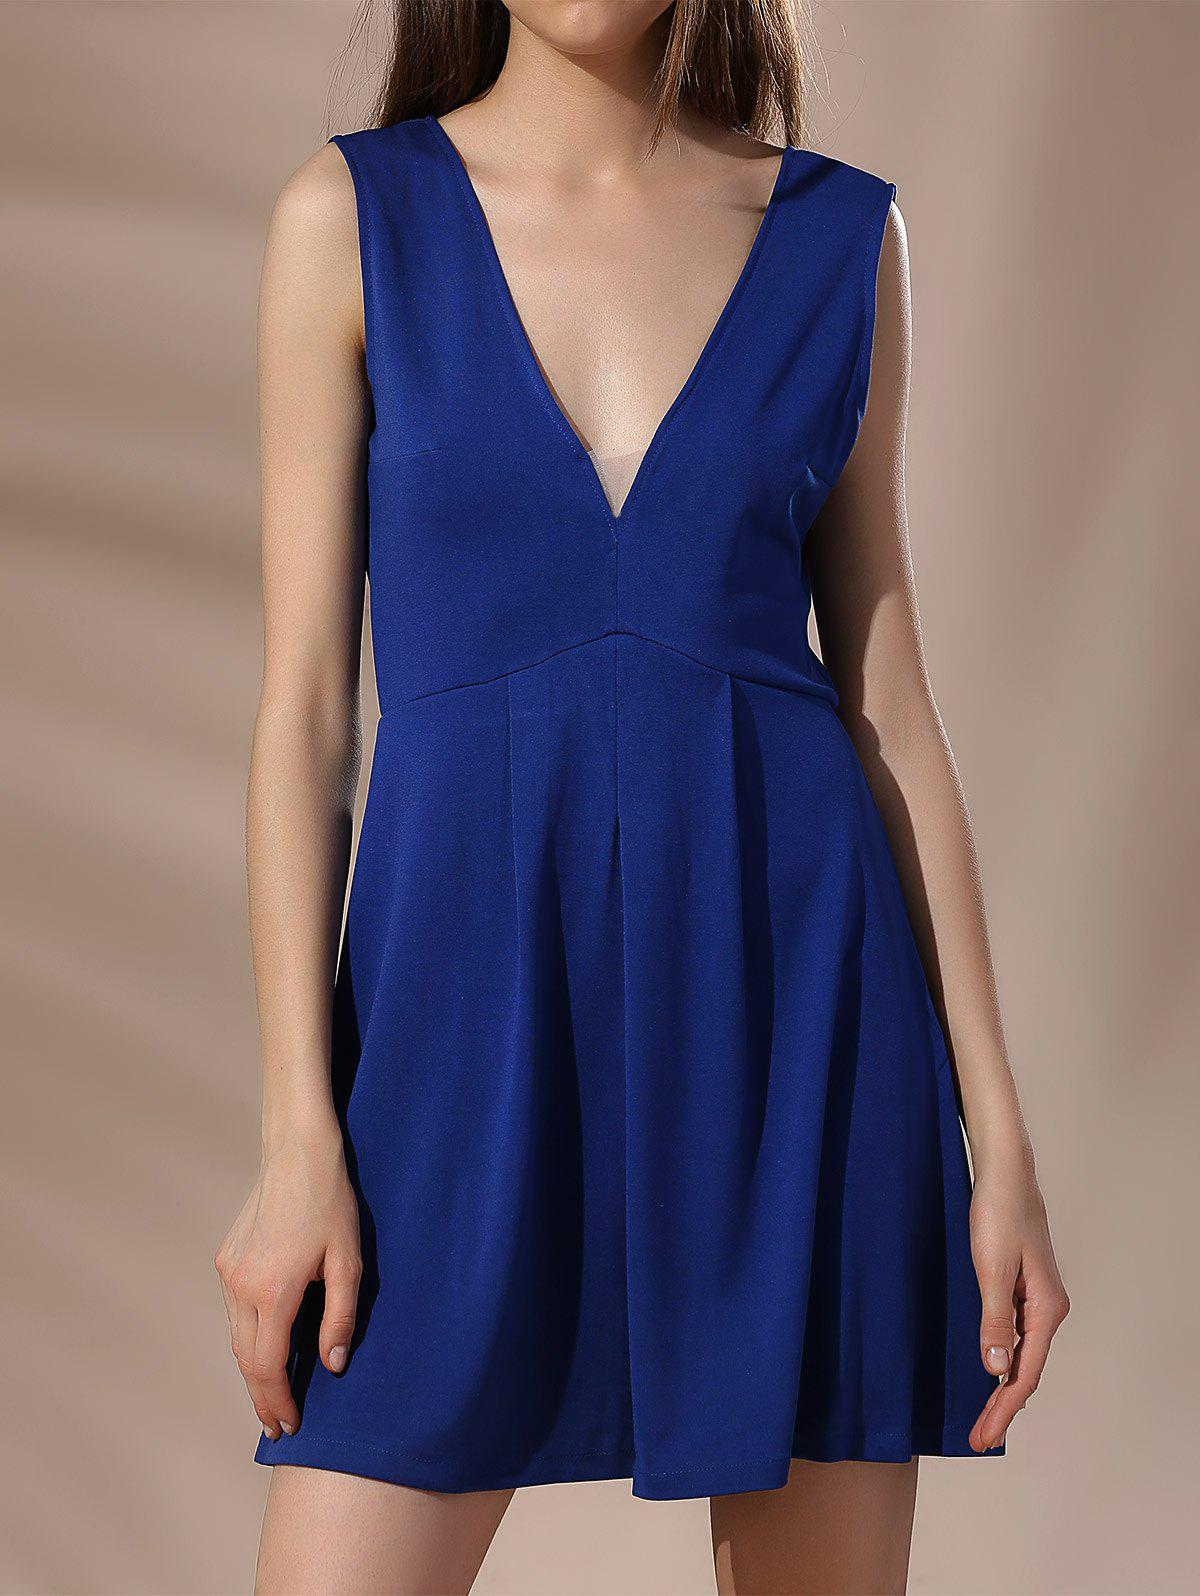 Alluring Women's Plunging Neck Backless Solid Color Sleeveless Dress